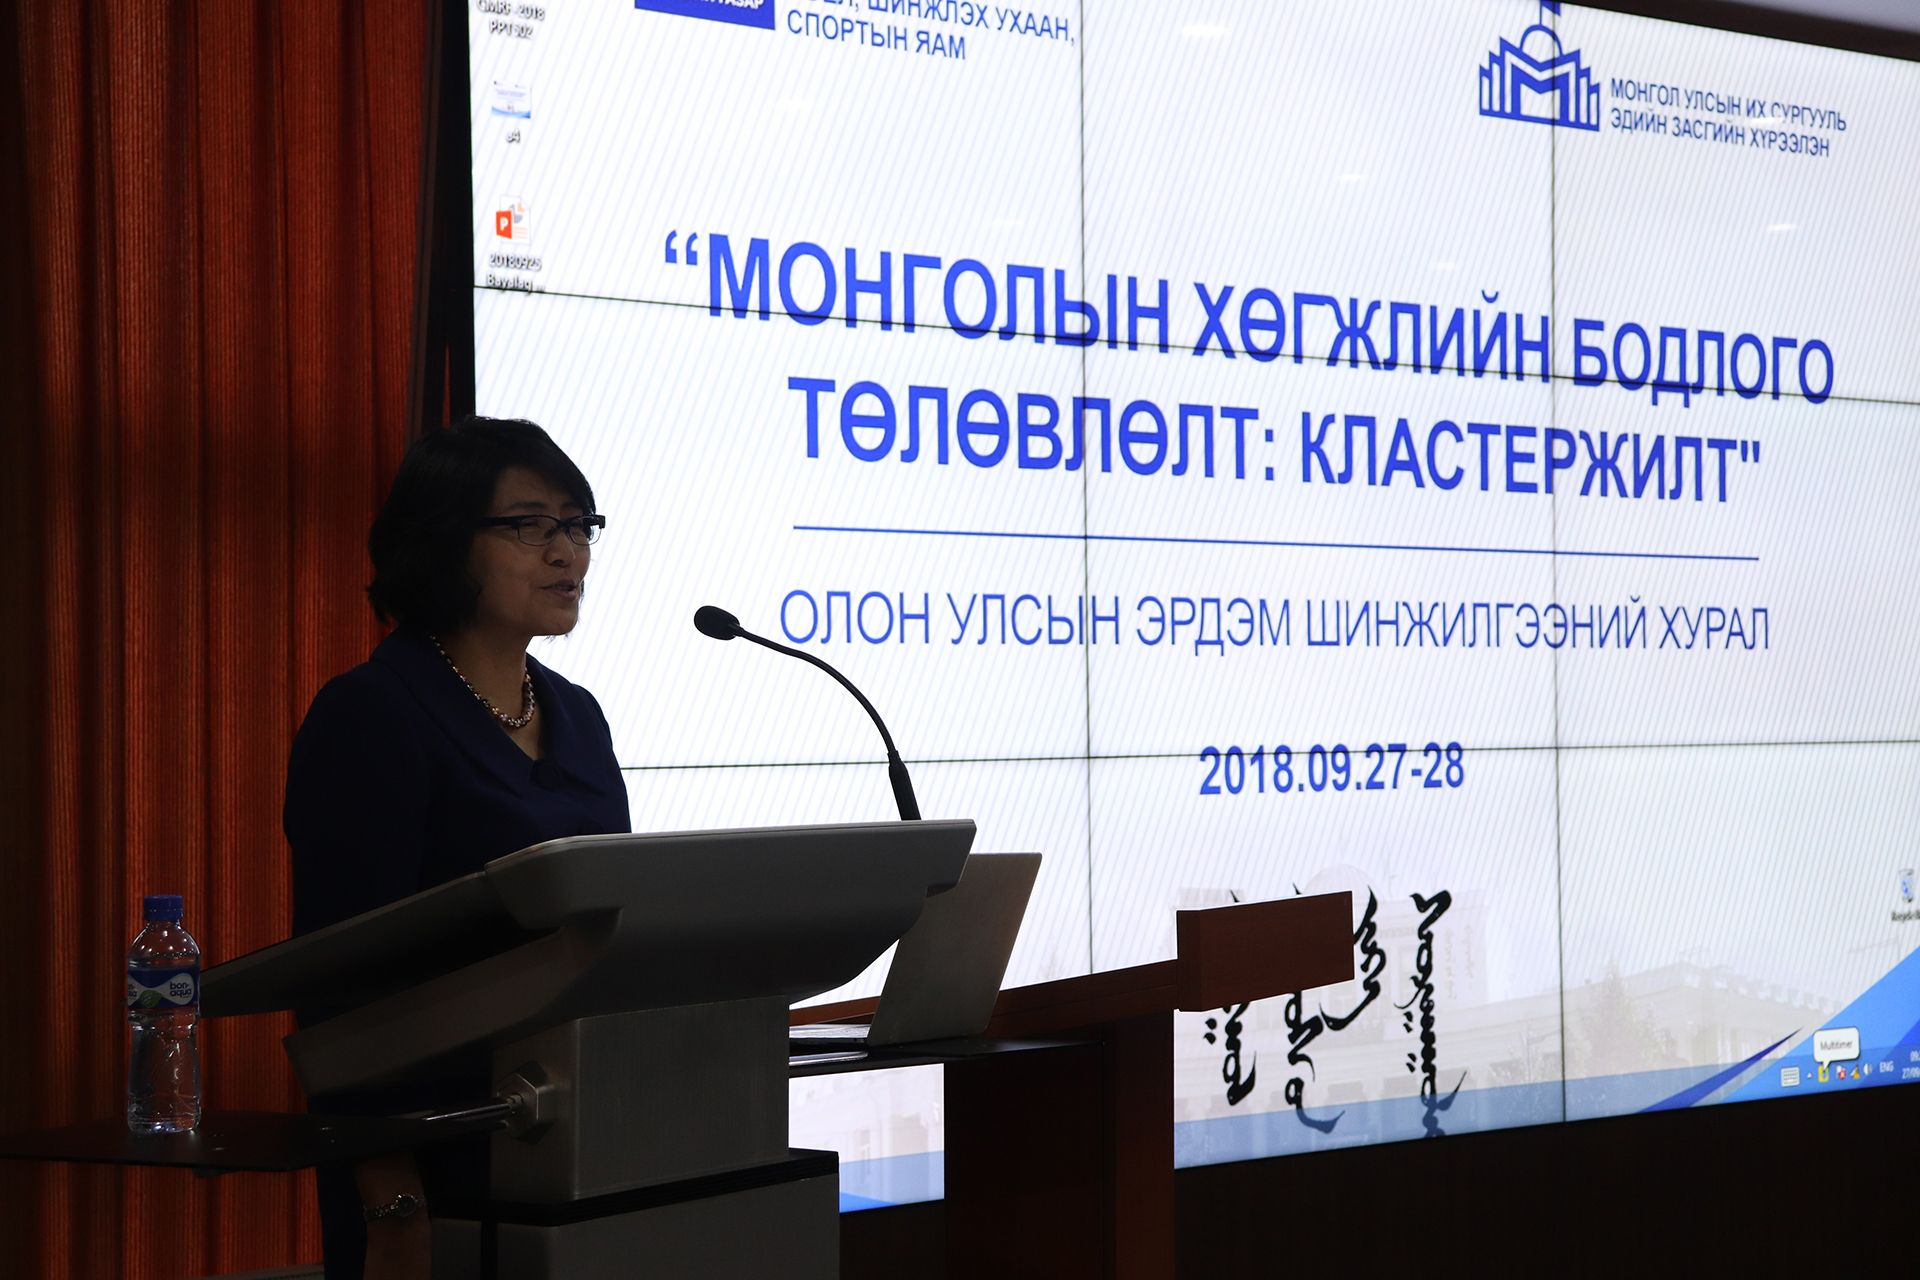 Tsevelmaa Khyargas Prof. PhD. Director of Economic Institute, National University of Mongolia